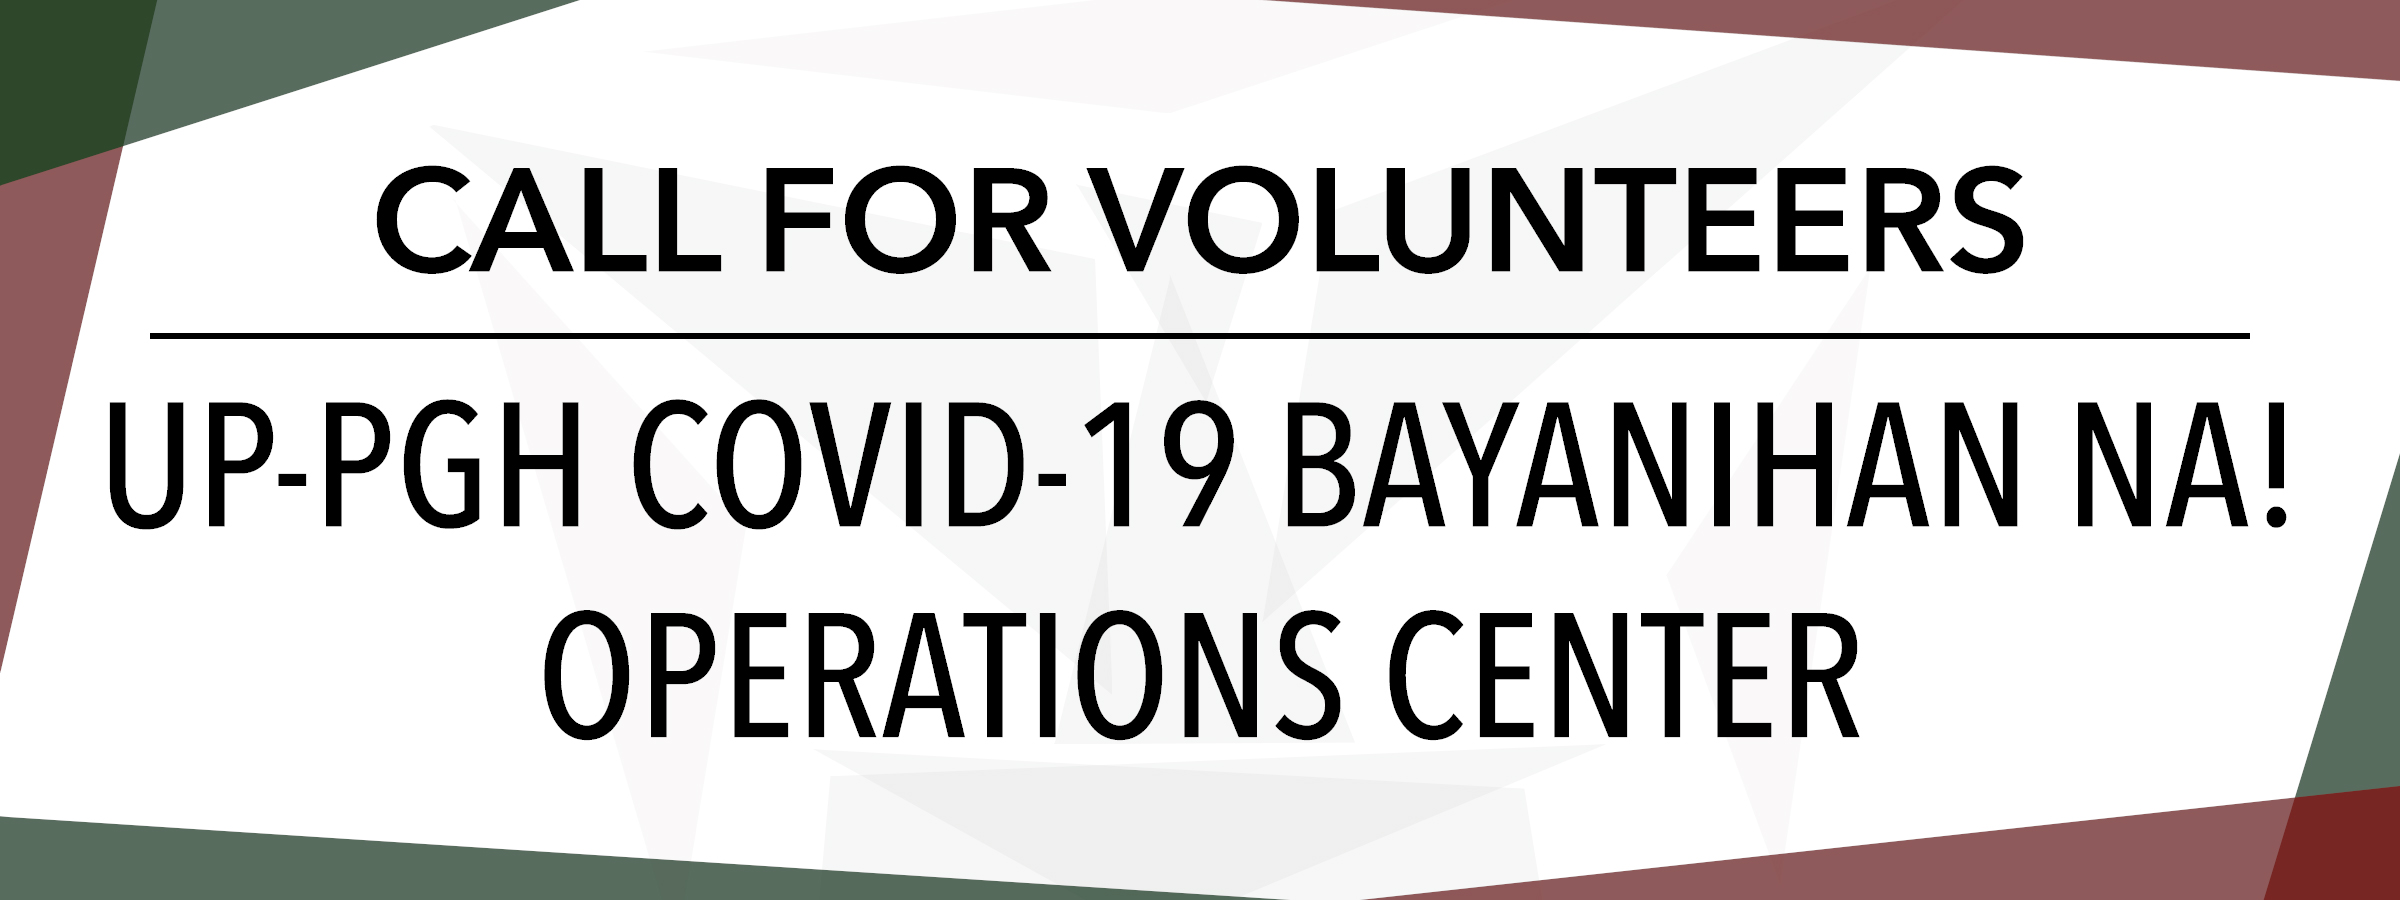 CALL FOR VOLUNTEERS: UP-PGH COVID-19 Bayanihan Na! Operations Center